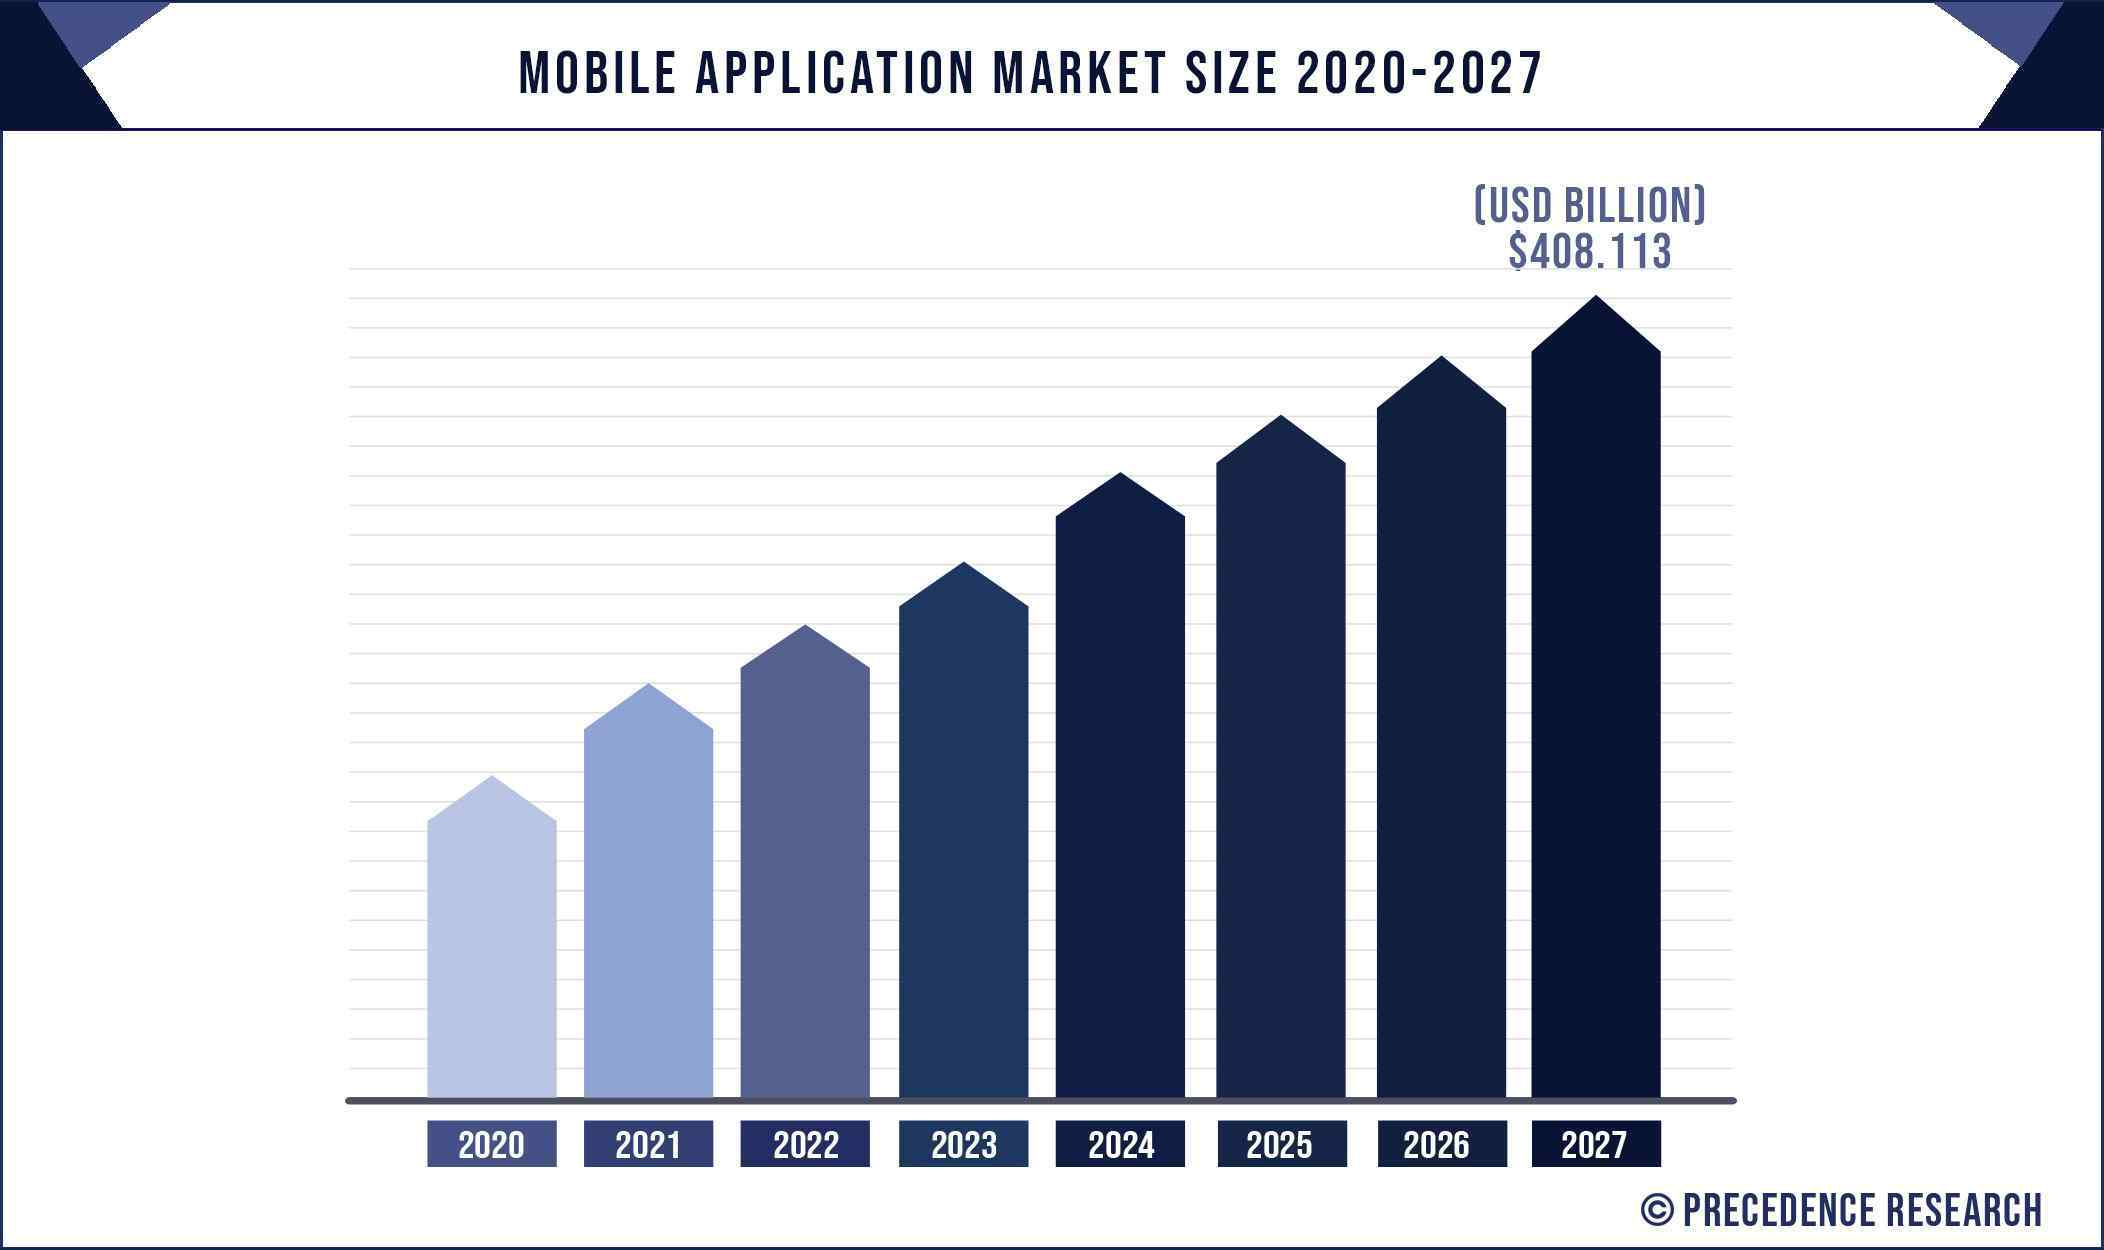 Mobile Application Market Size 2020 to 2027 (%)